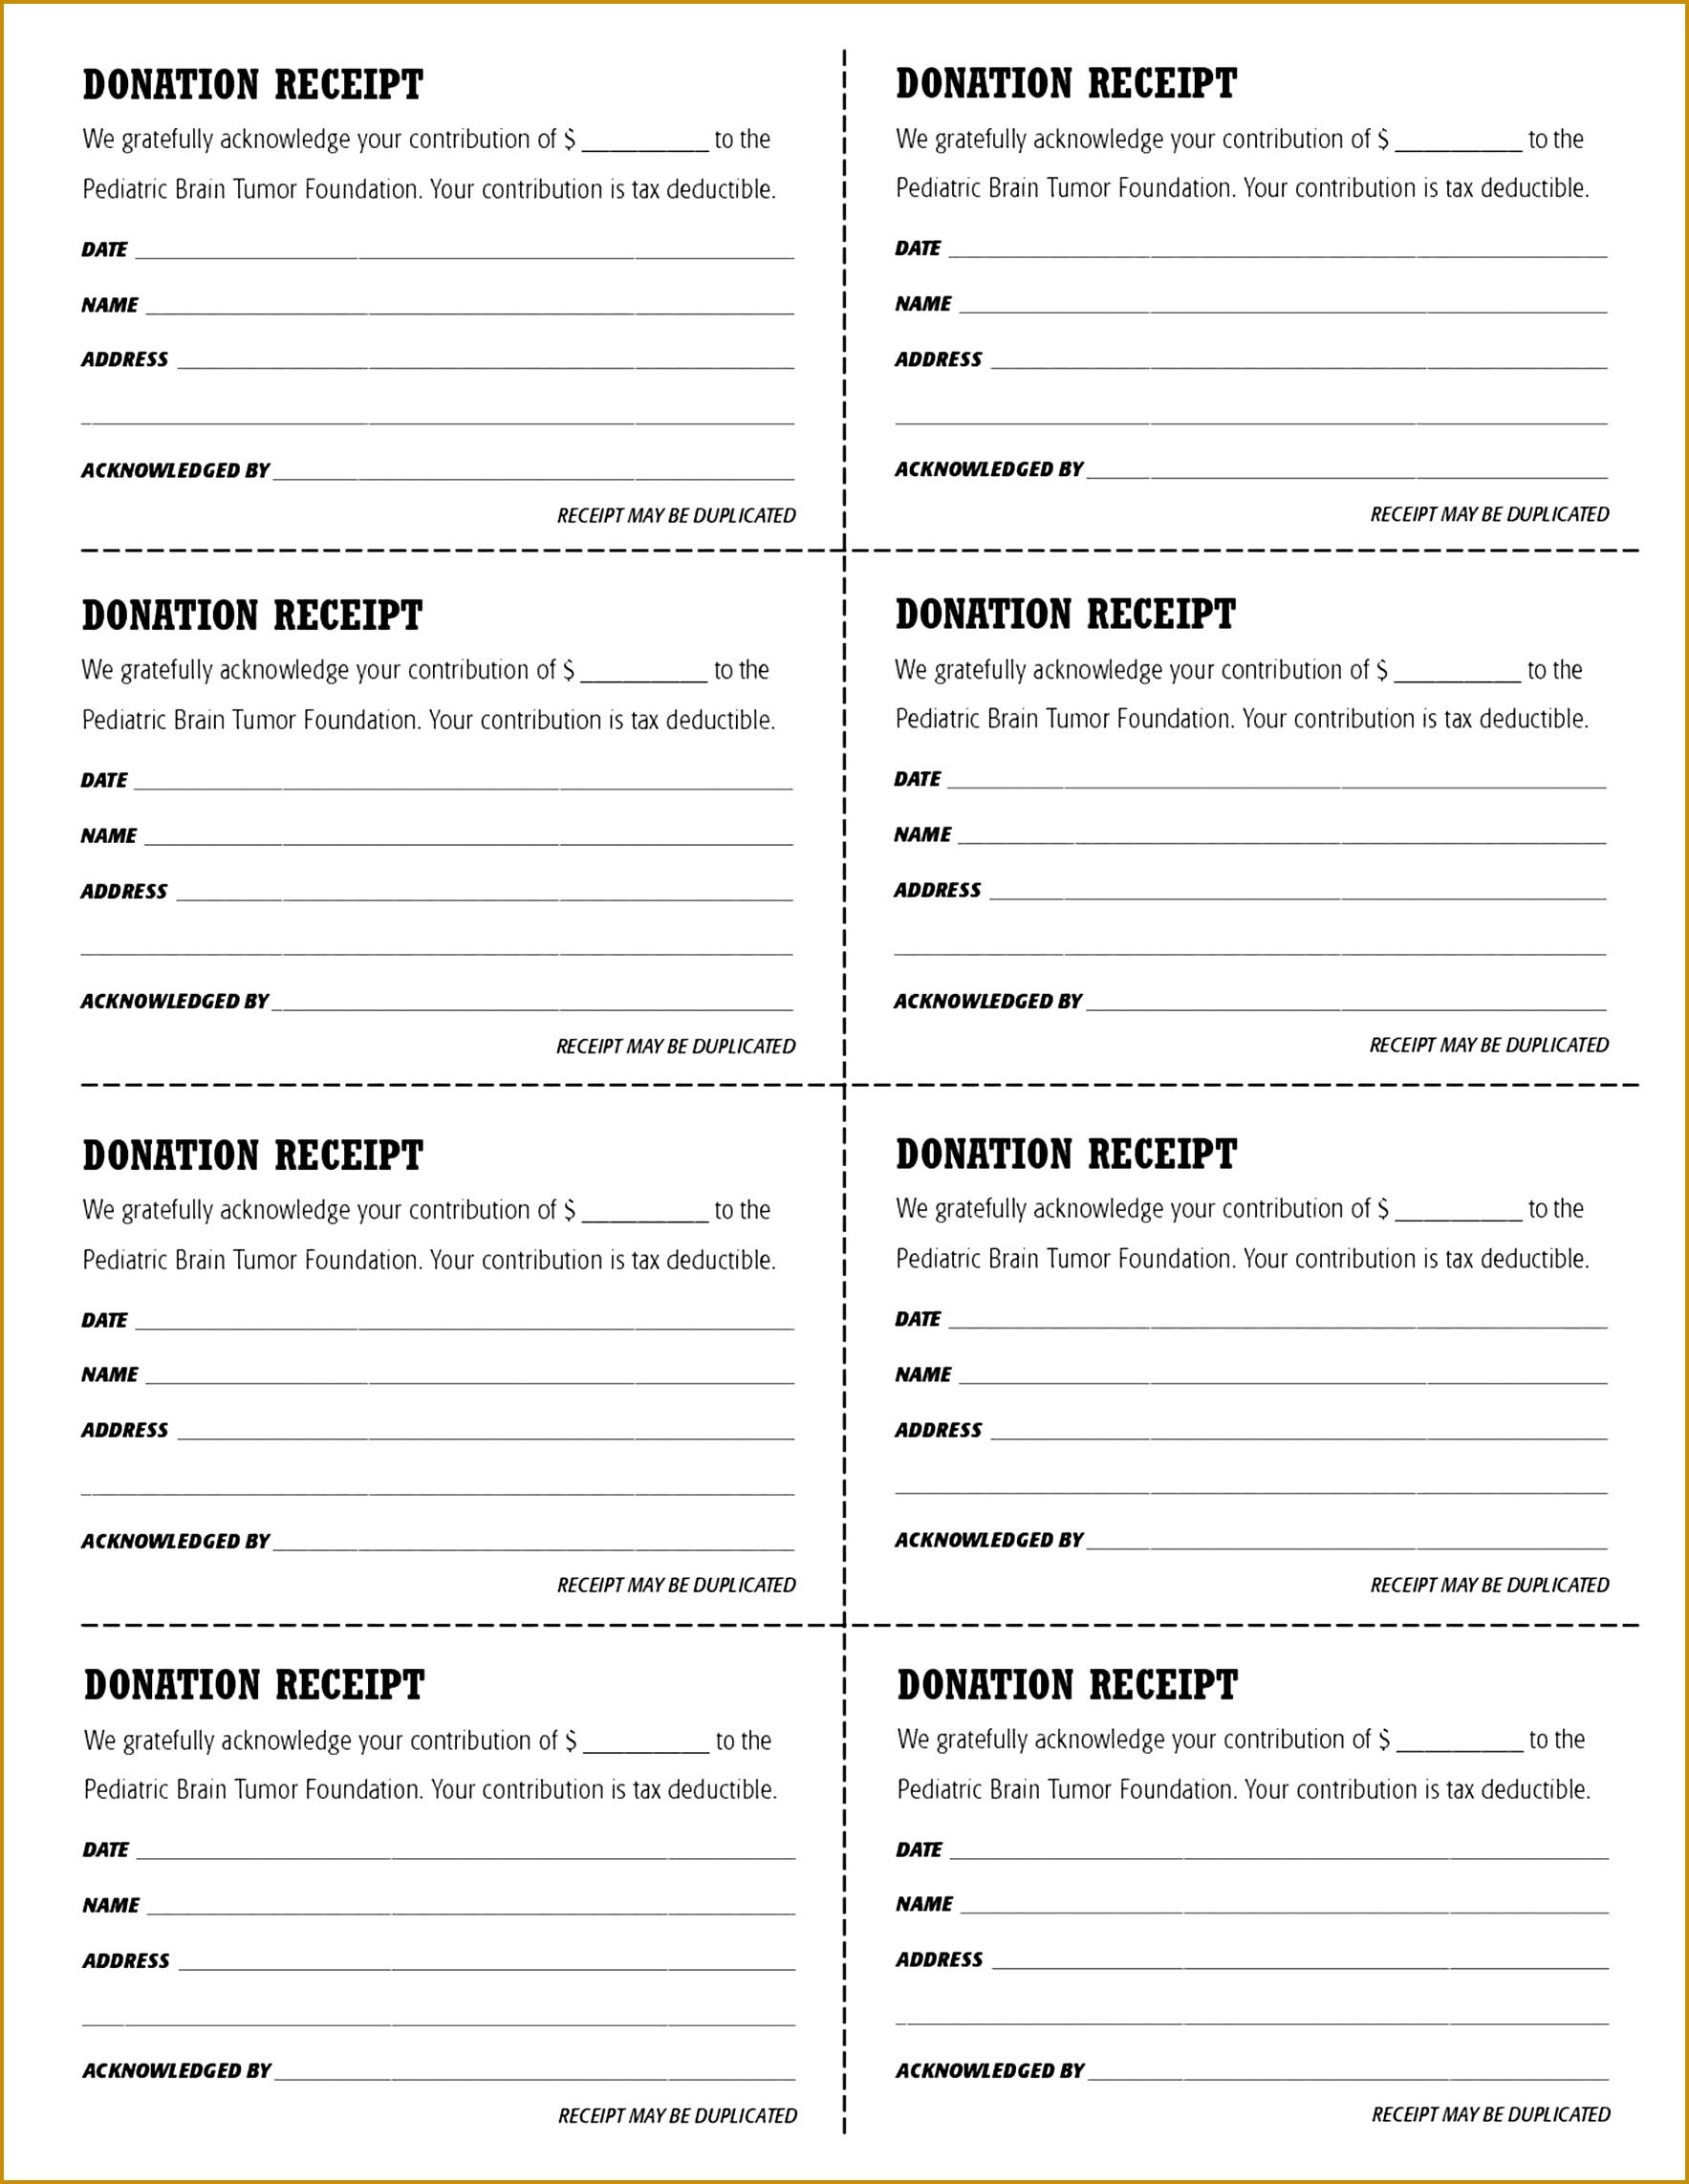 6 Tax Deductible Receipt Template